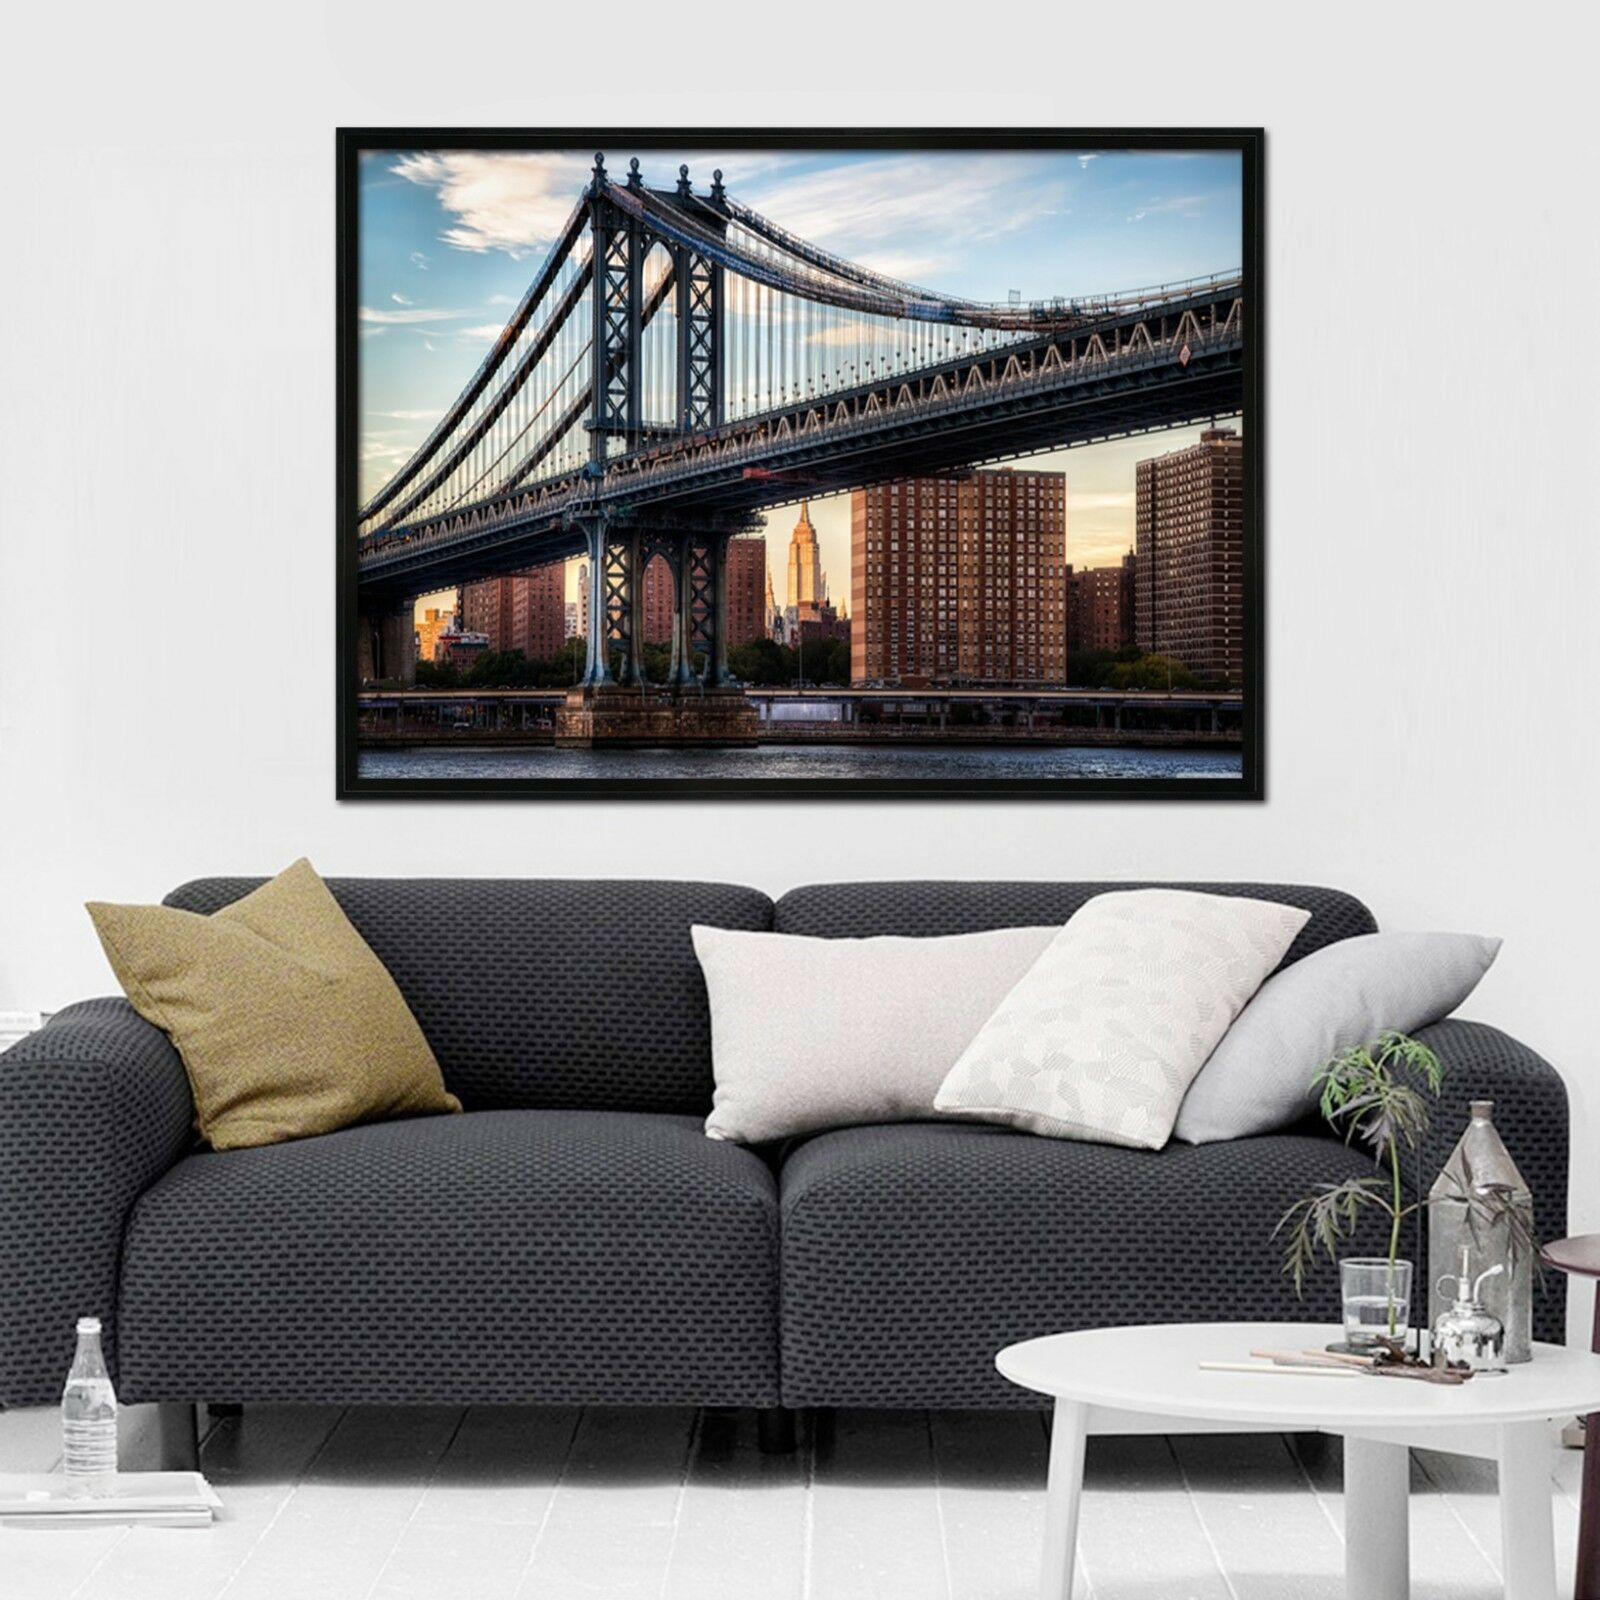 3D New York Pont 67 Framed Poster Home Decor imprimer peinture art AJ papier peint